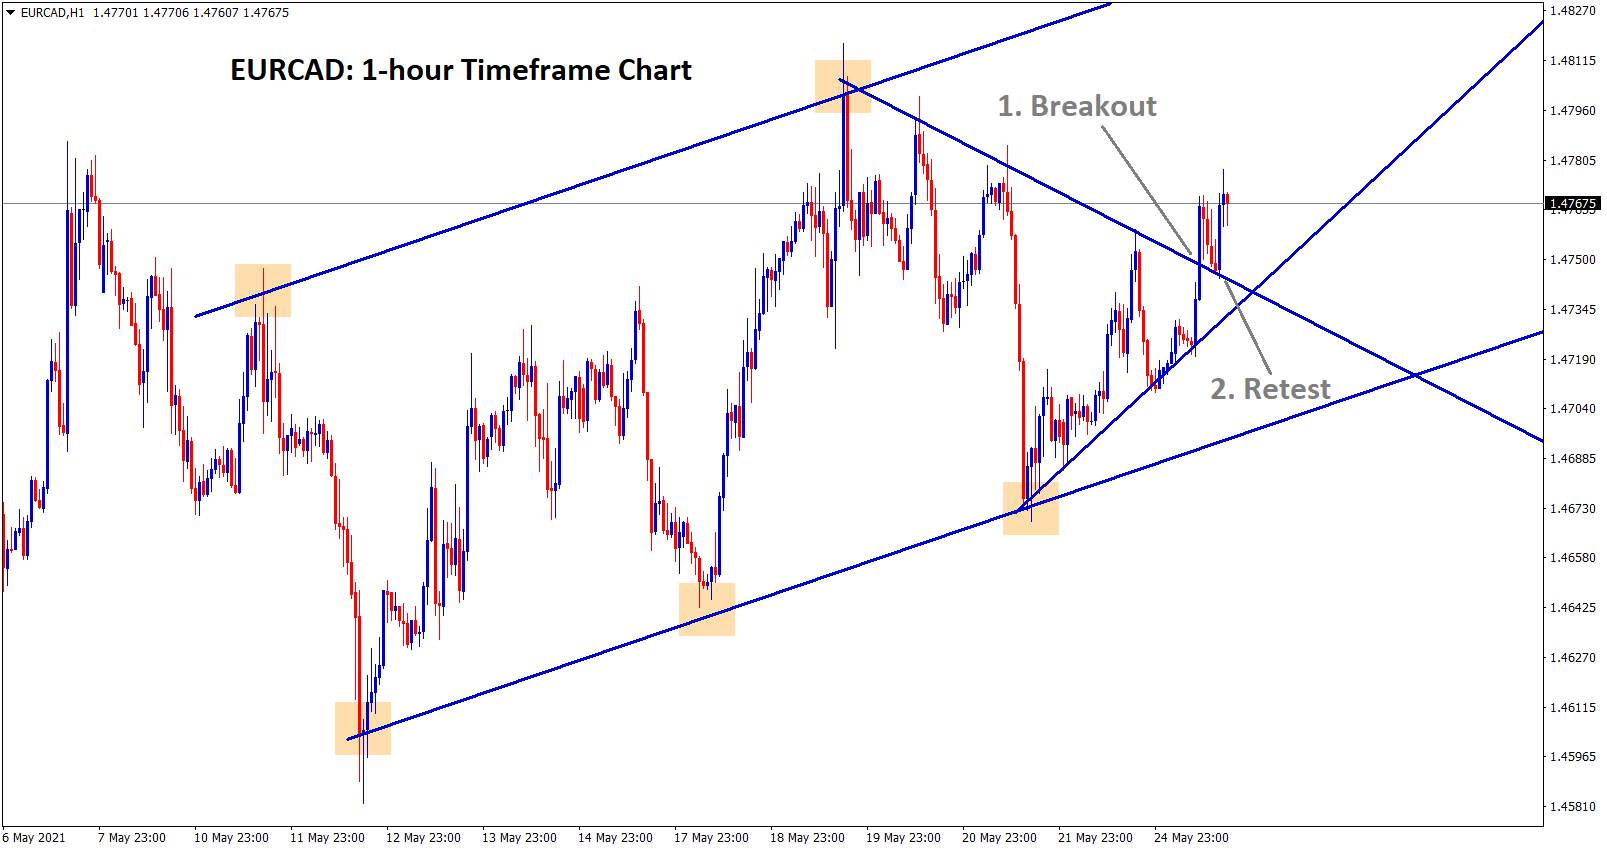 EURCAD has broken the top of the minor symmetrical triangle formed inside the uptrend